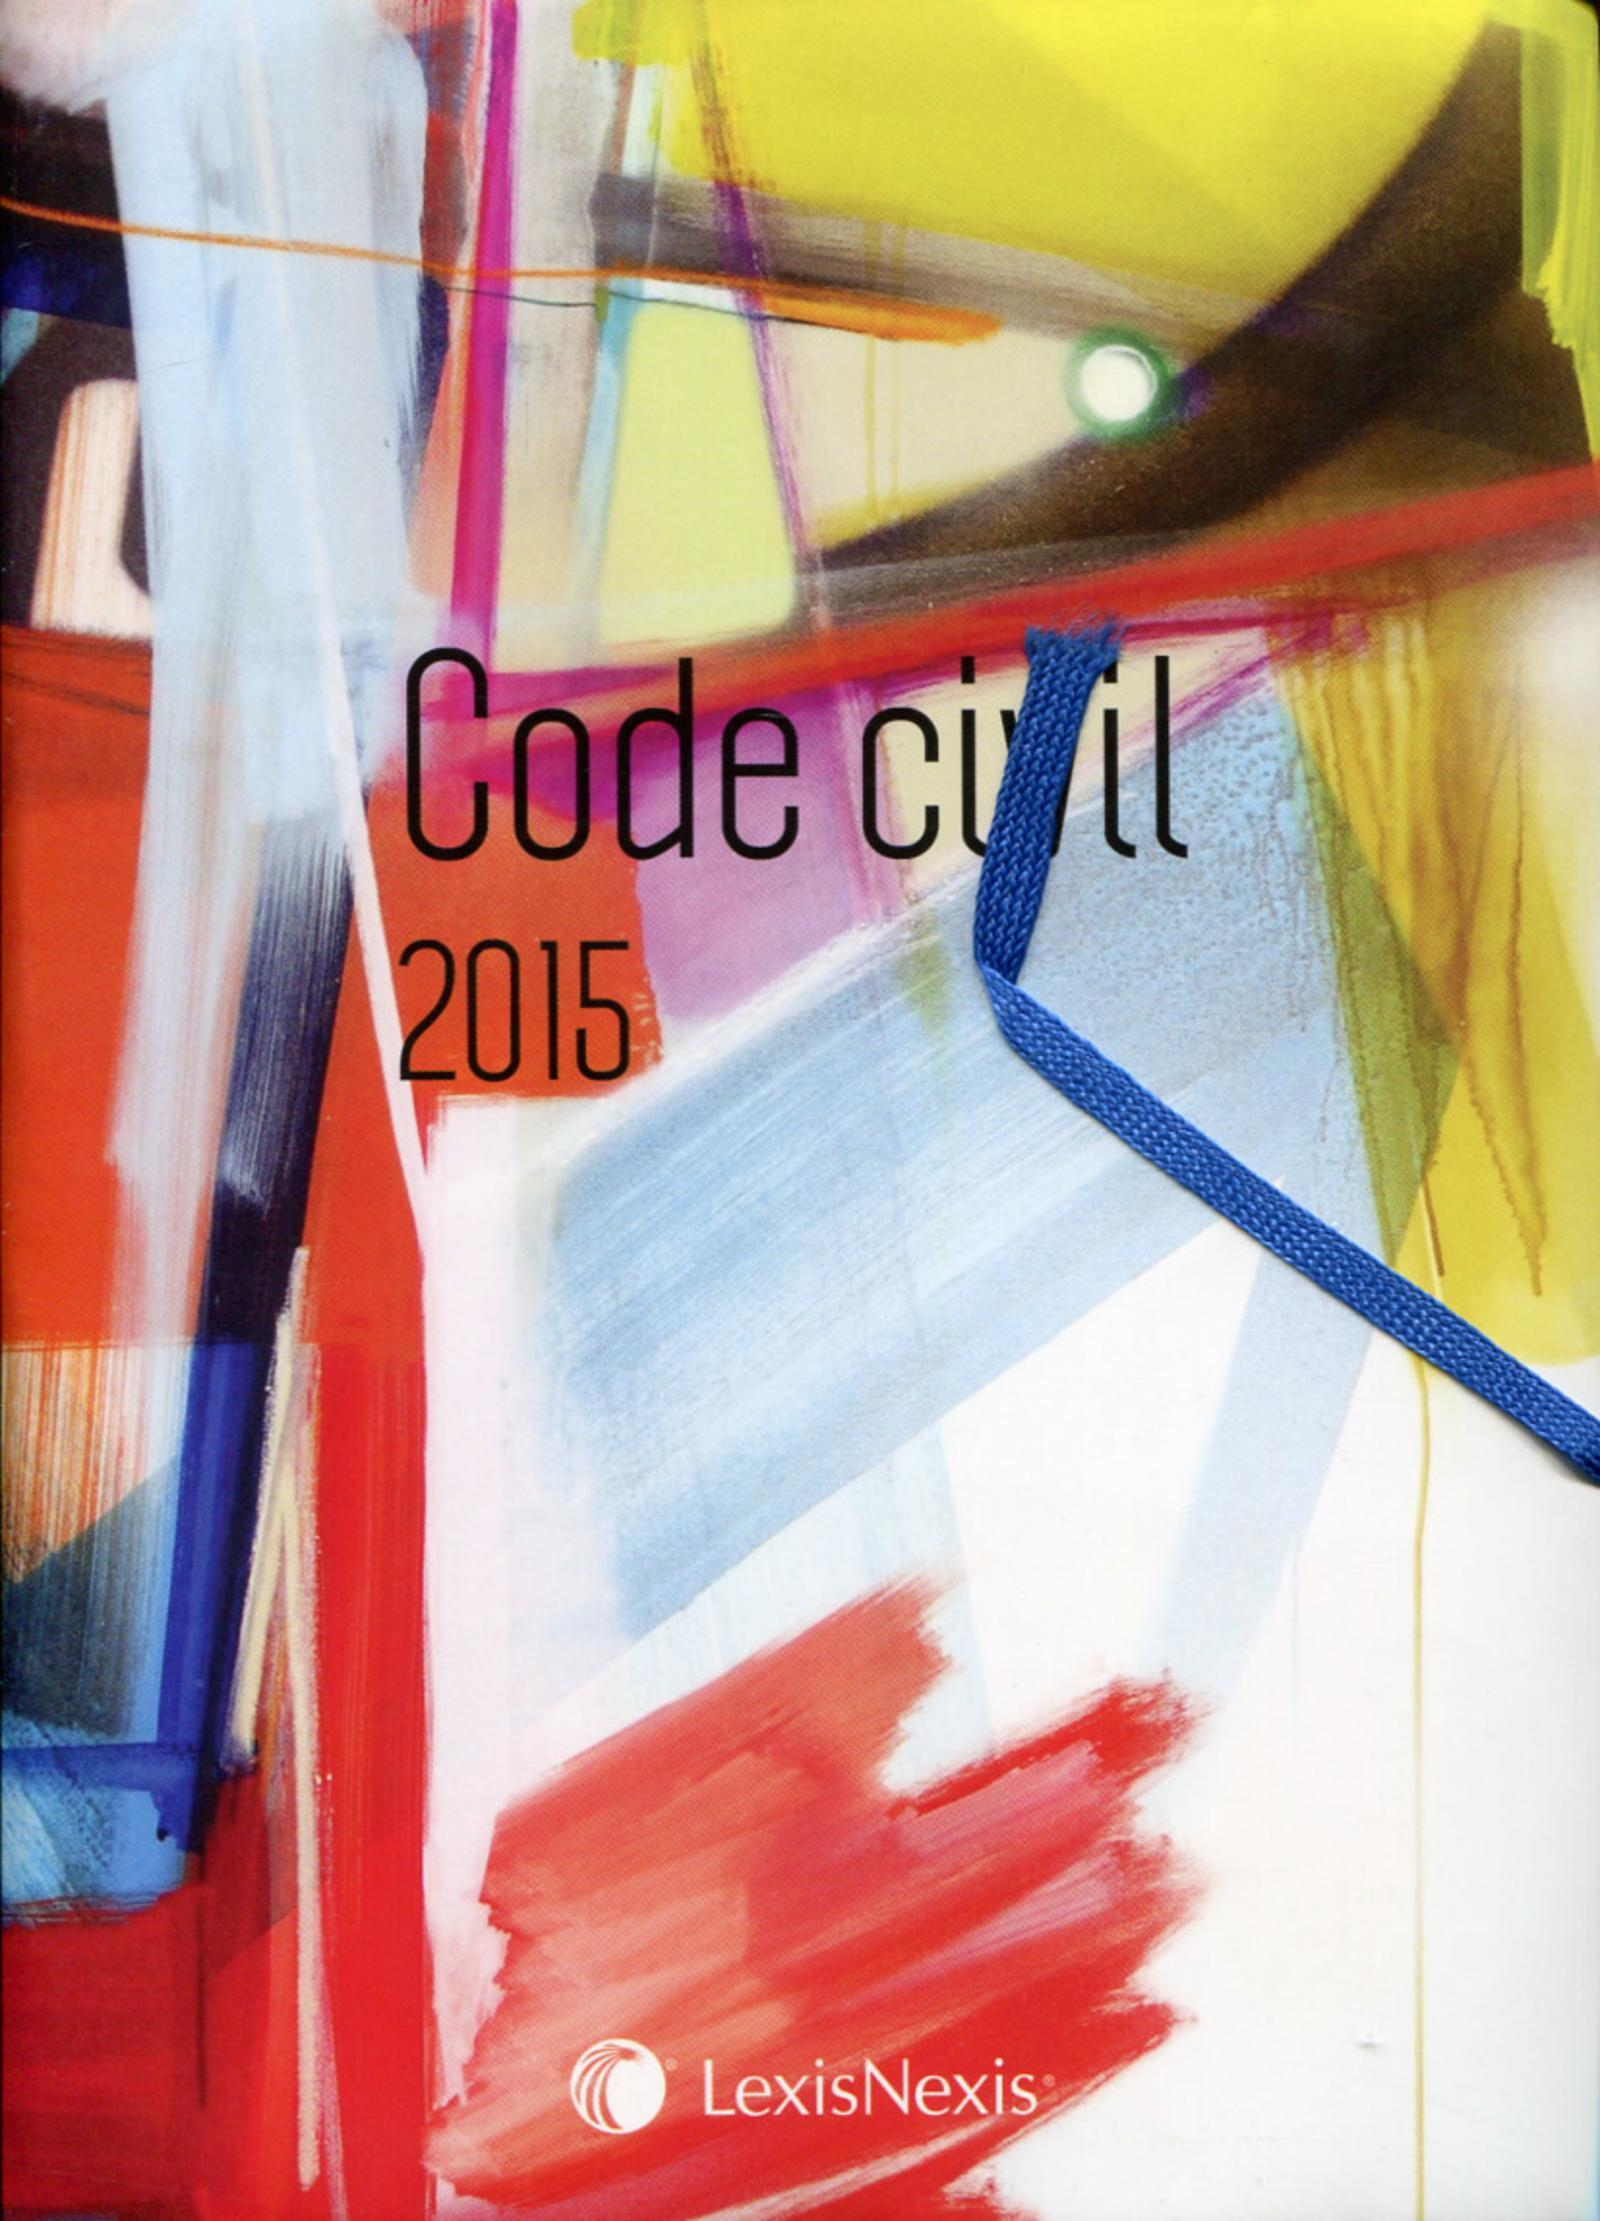 CODE CIVIL 2015 SMASH137